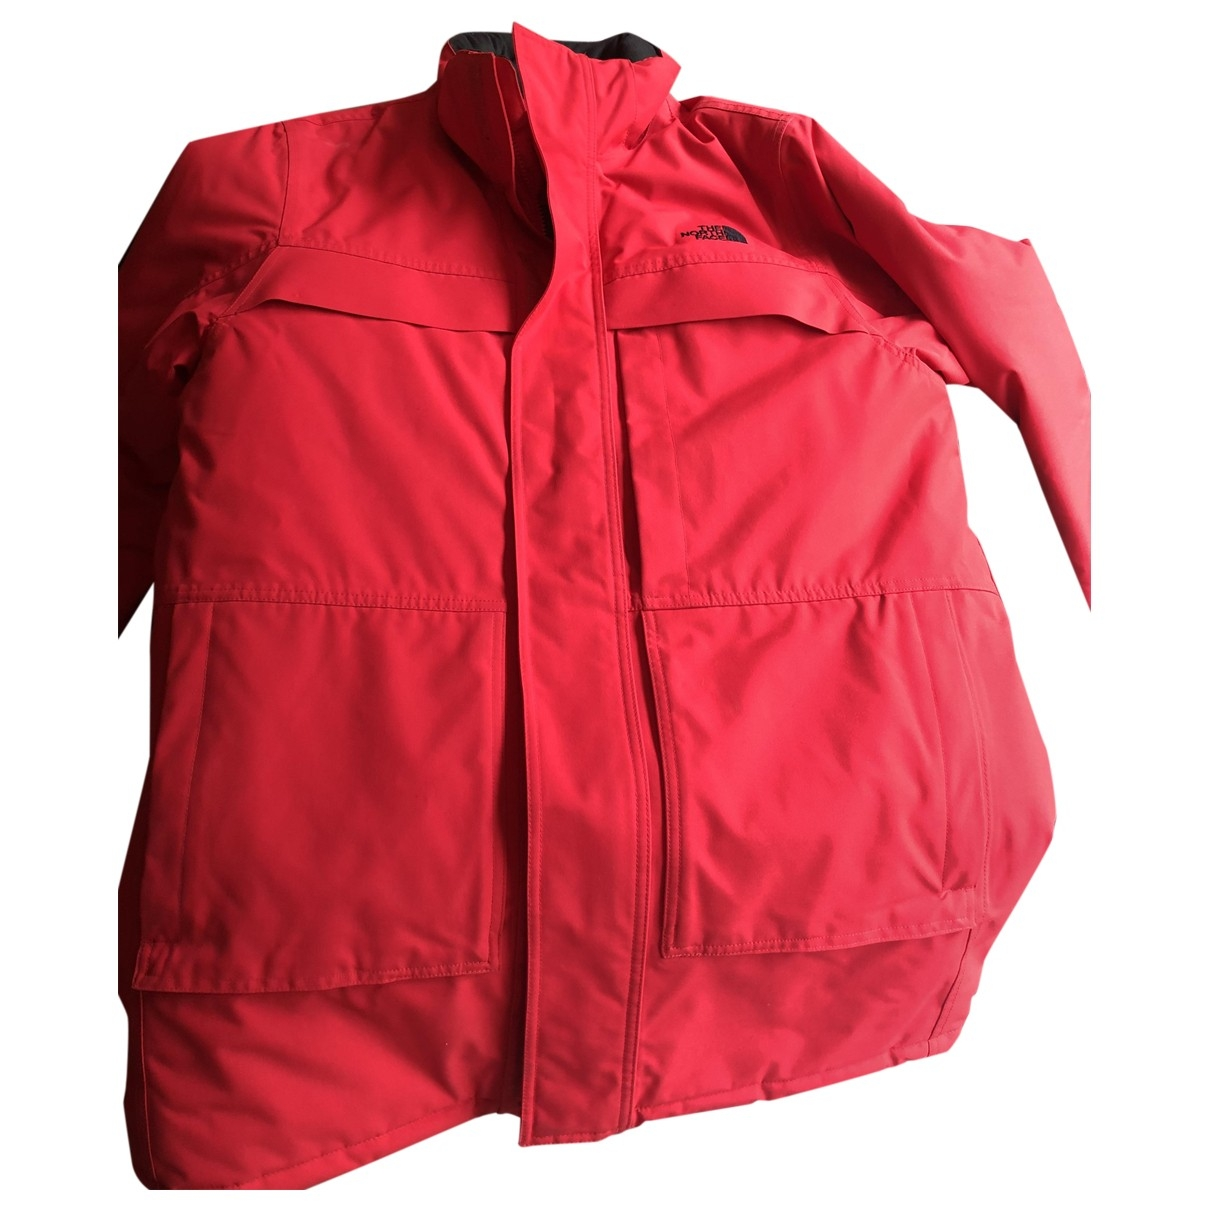 The North Face \N Red coat  for Men XL International